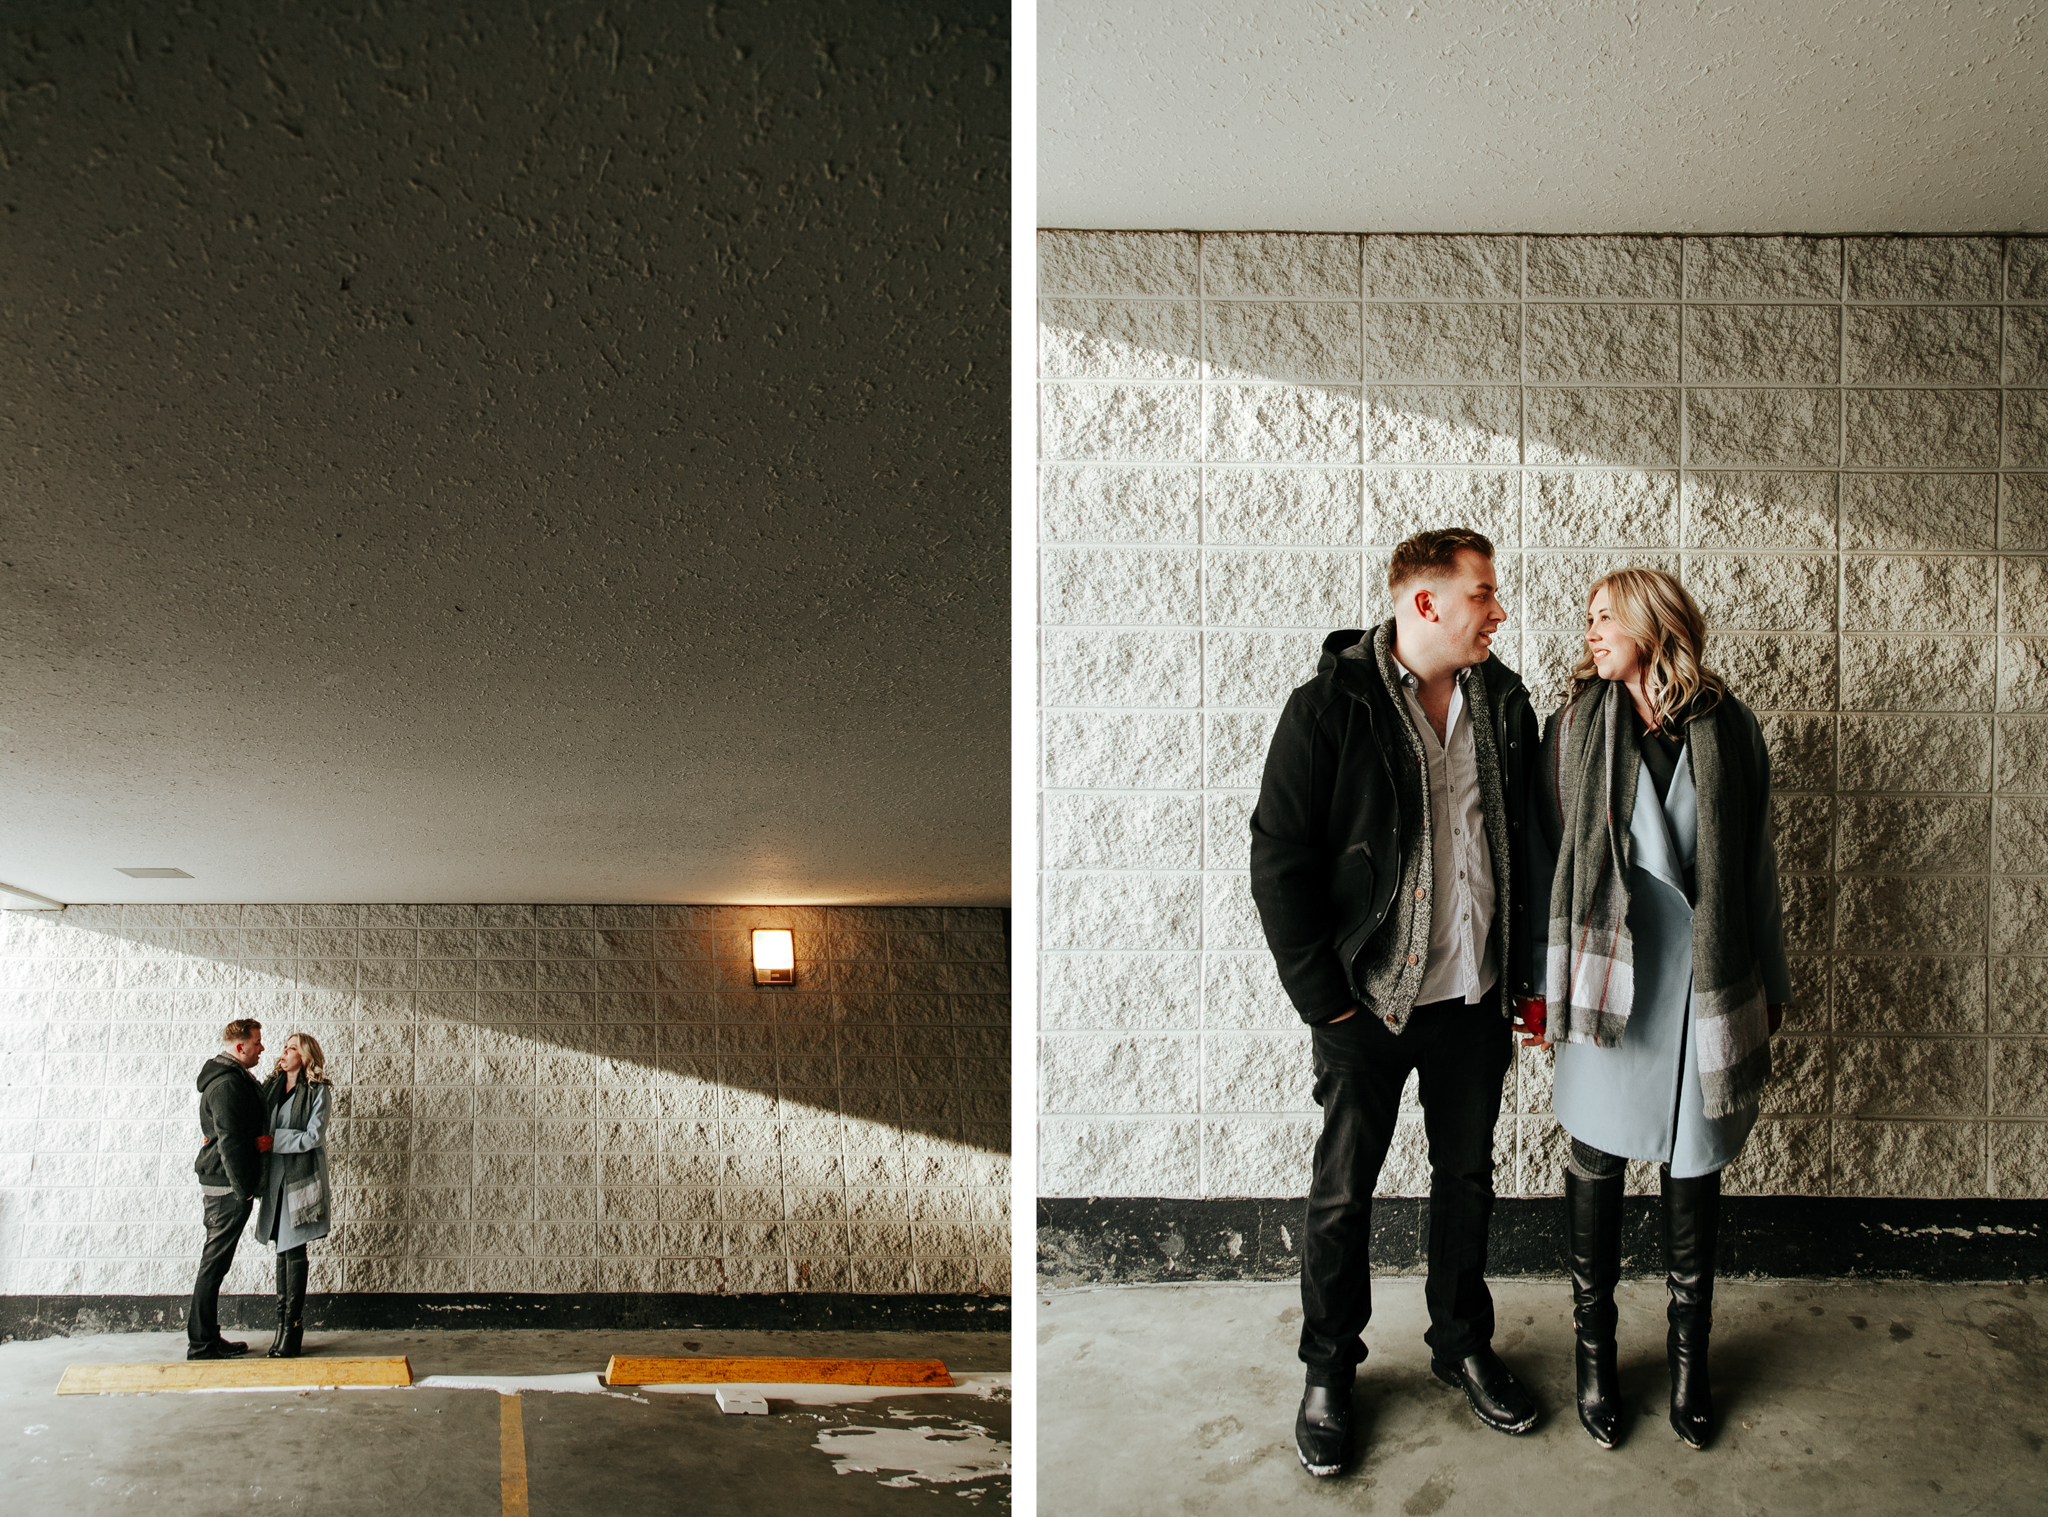 lethbridge-photographer-love-and-be-loved-photography-brandon-danielle-winter-engagement-downtown-yql-picture-image-photo-58.jpg